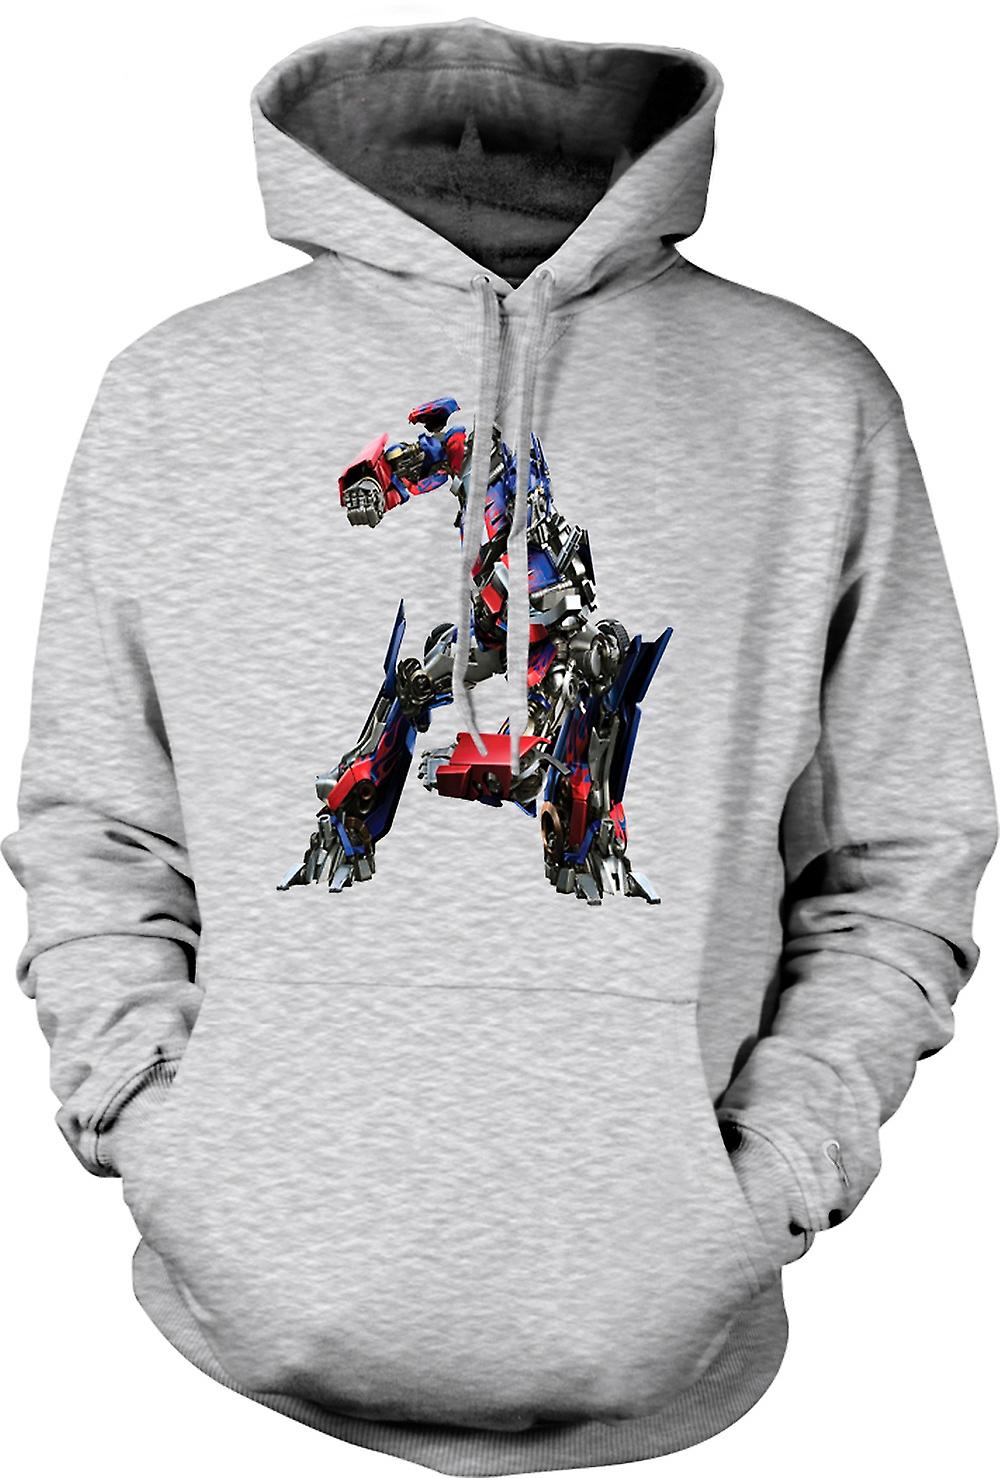 Mens Hoodie - Optimus Prime - Transformers